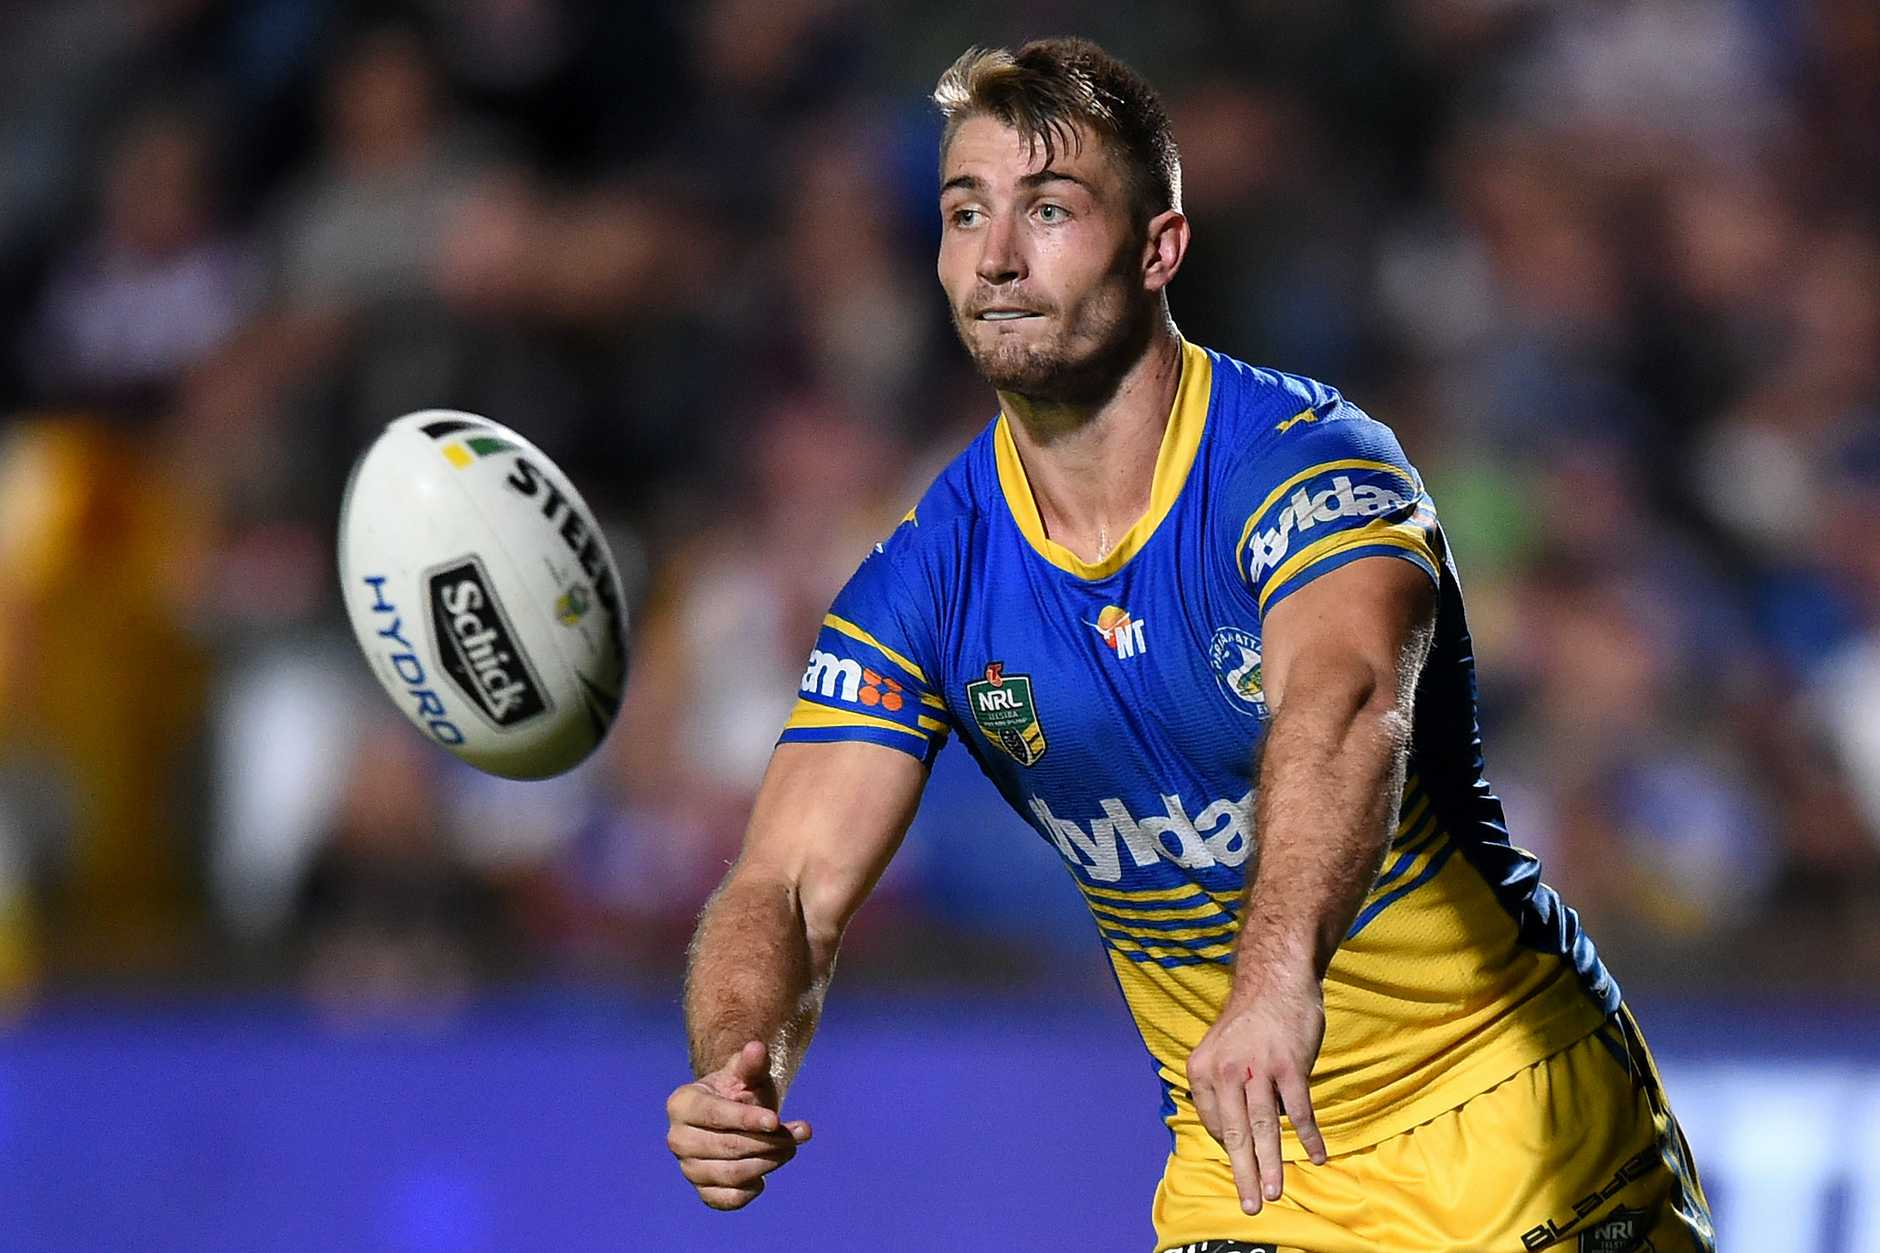 Kieran Foran of the Eels passes the ball at Brookvale Oval. Photo: AAP Image/Paul MilleR